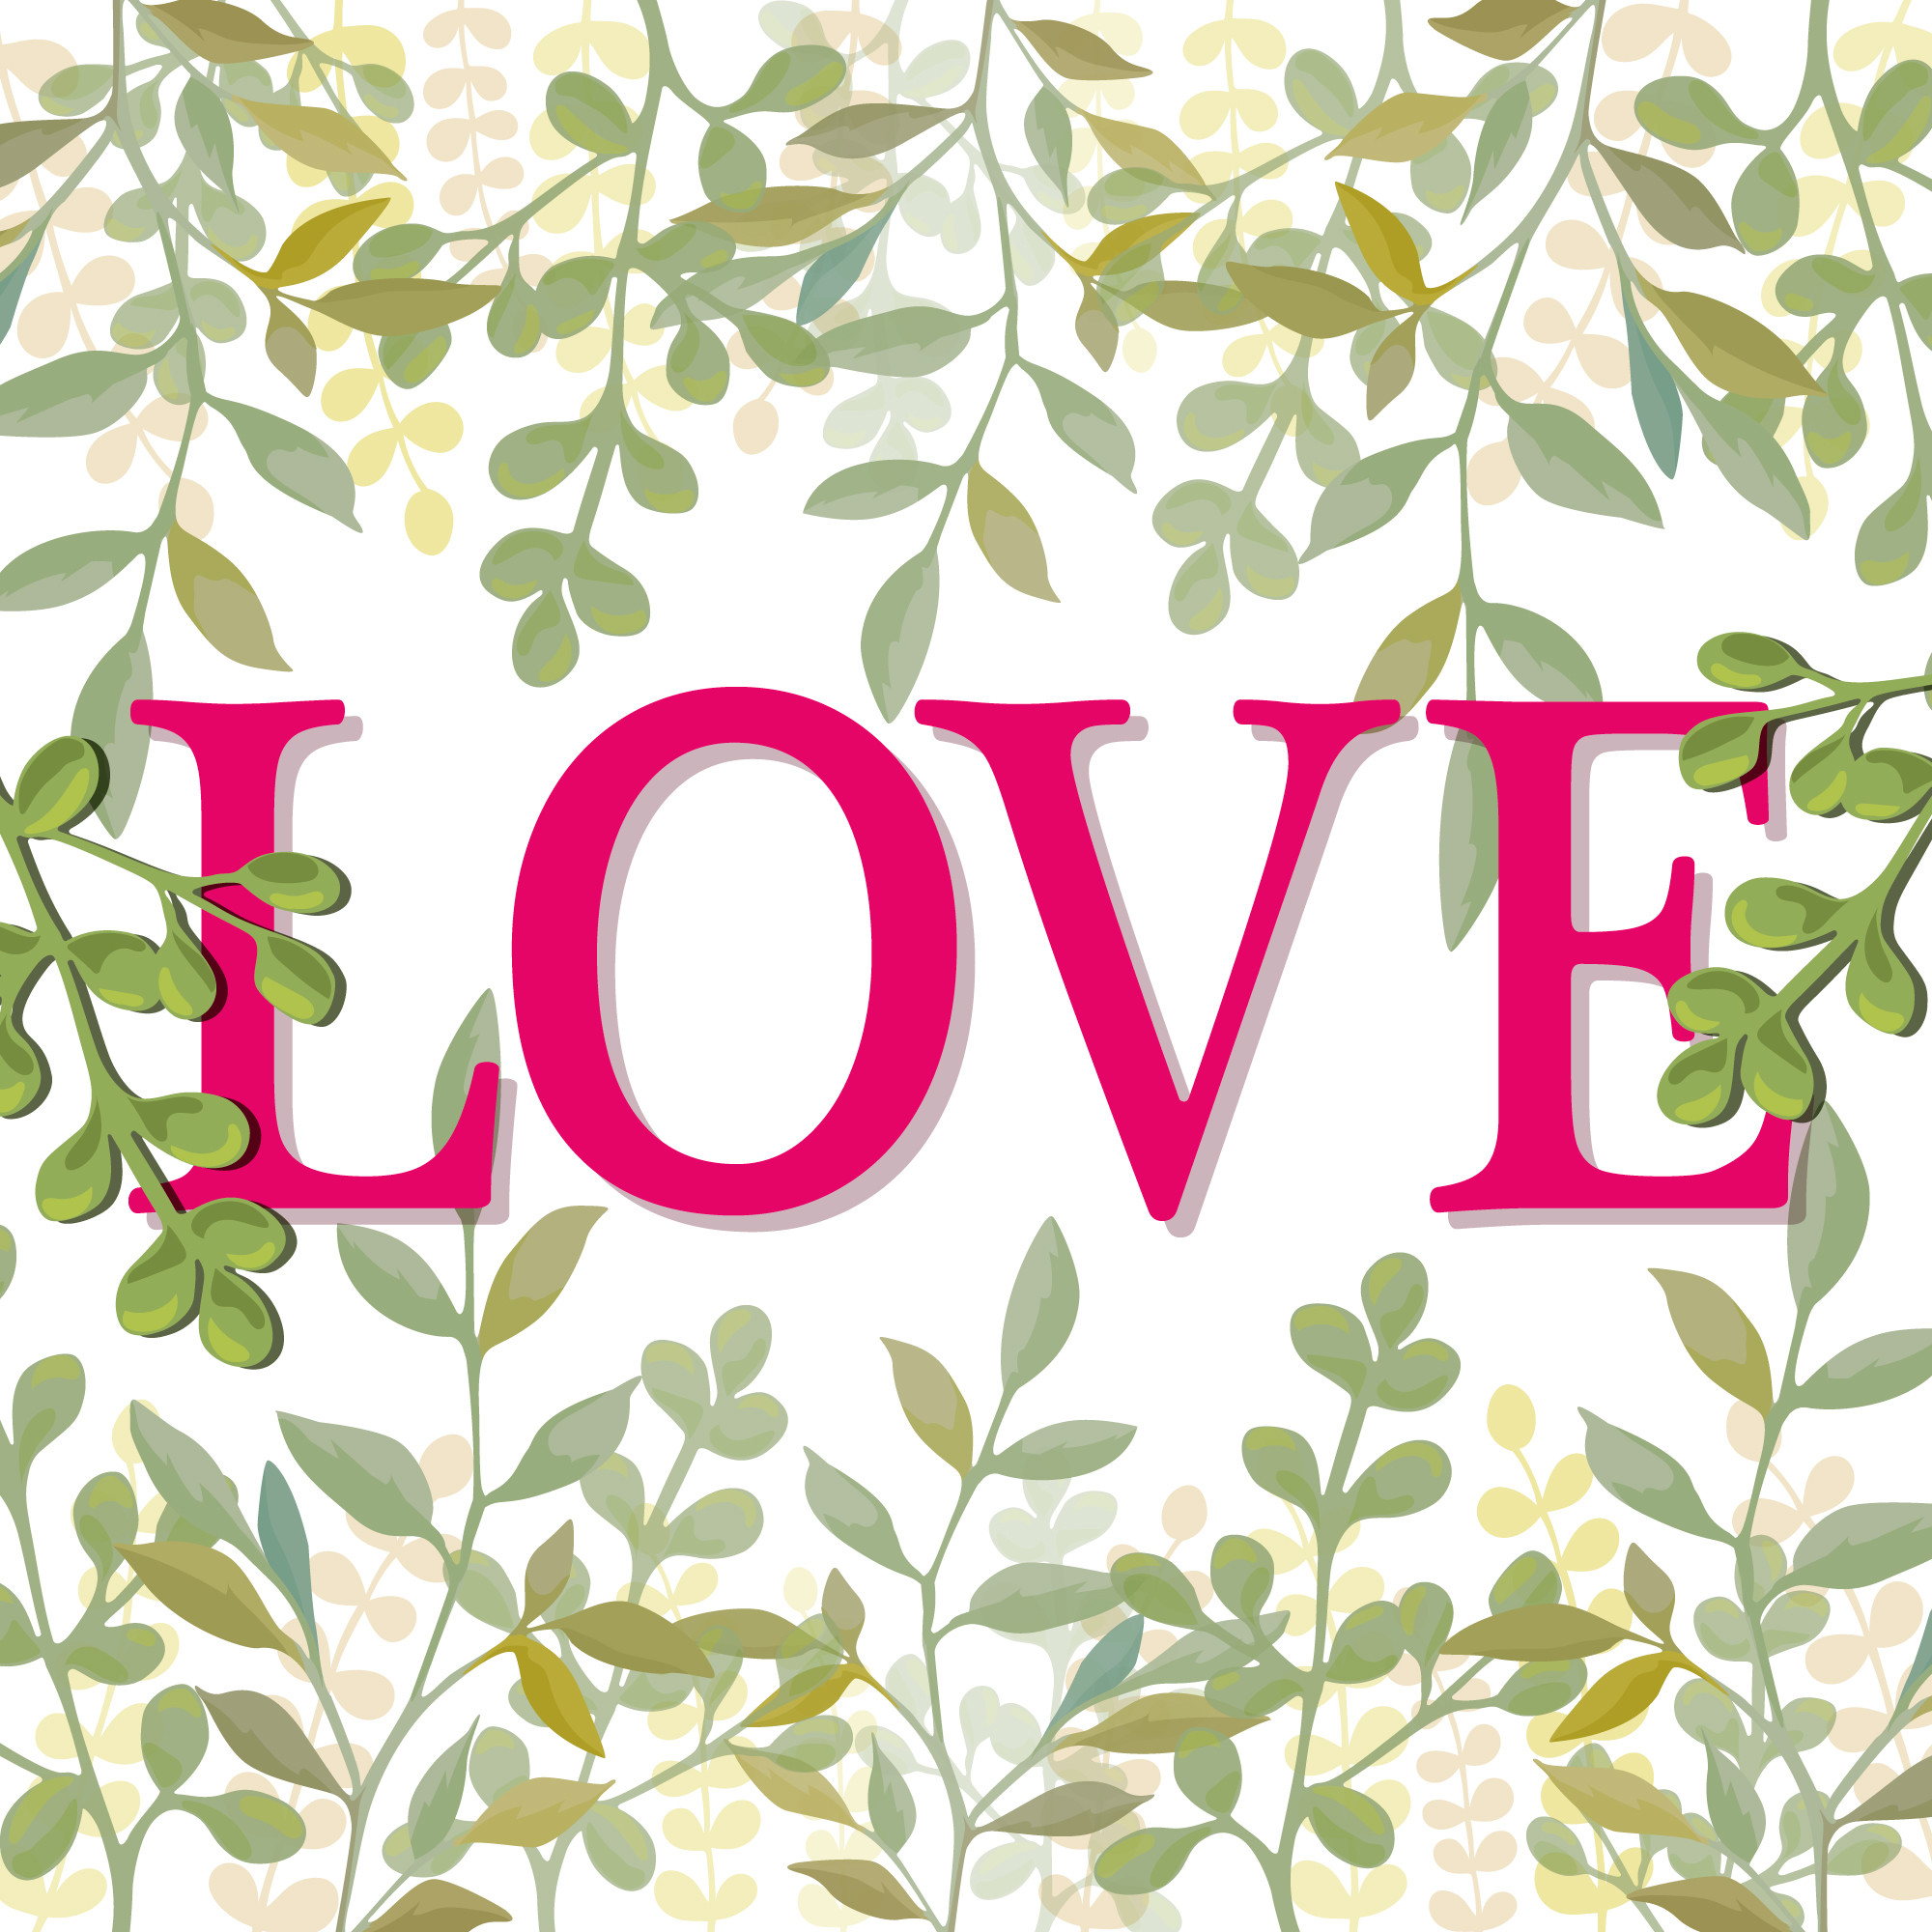 Word love with background of leaves